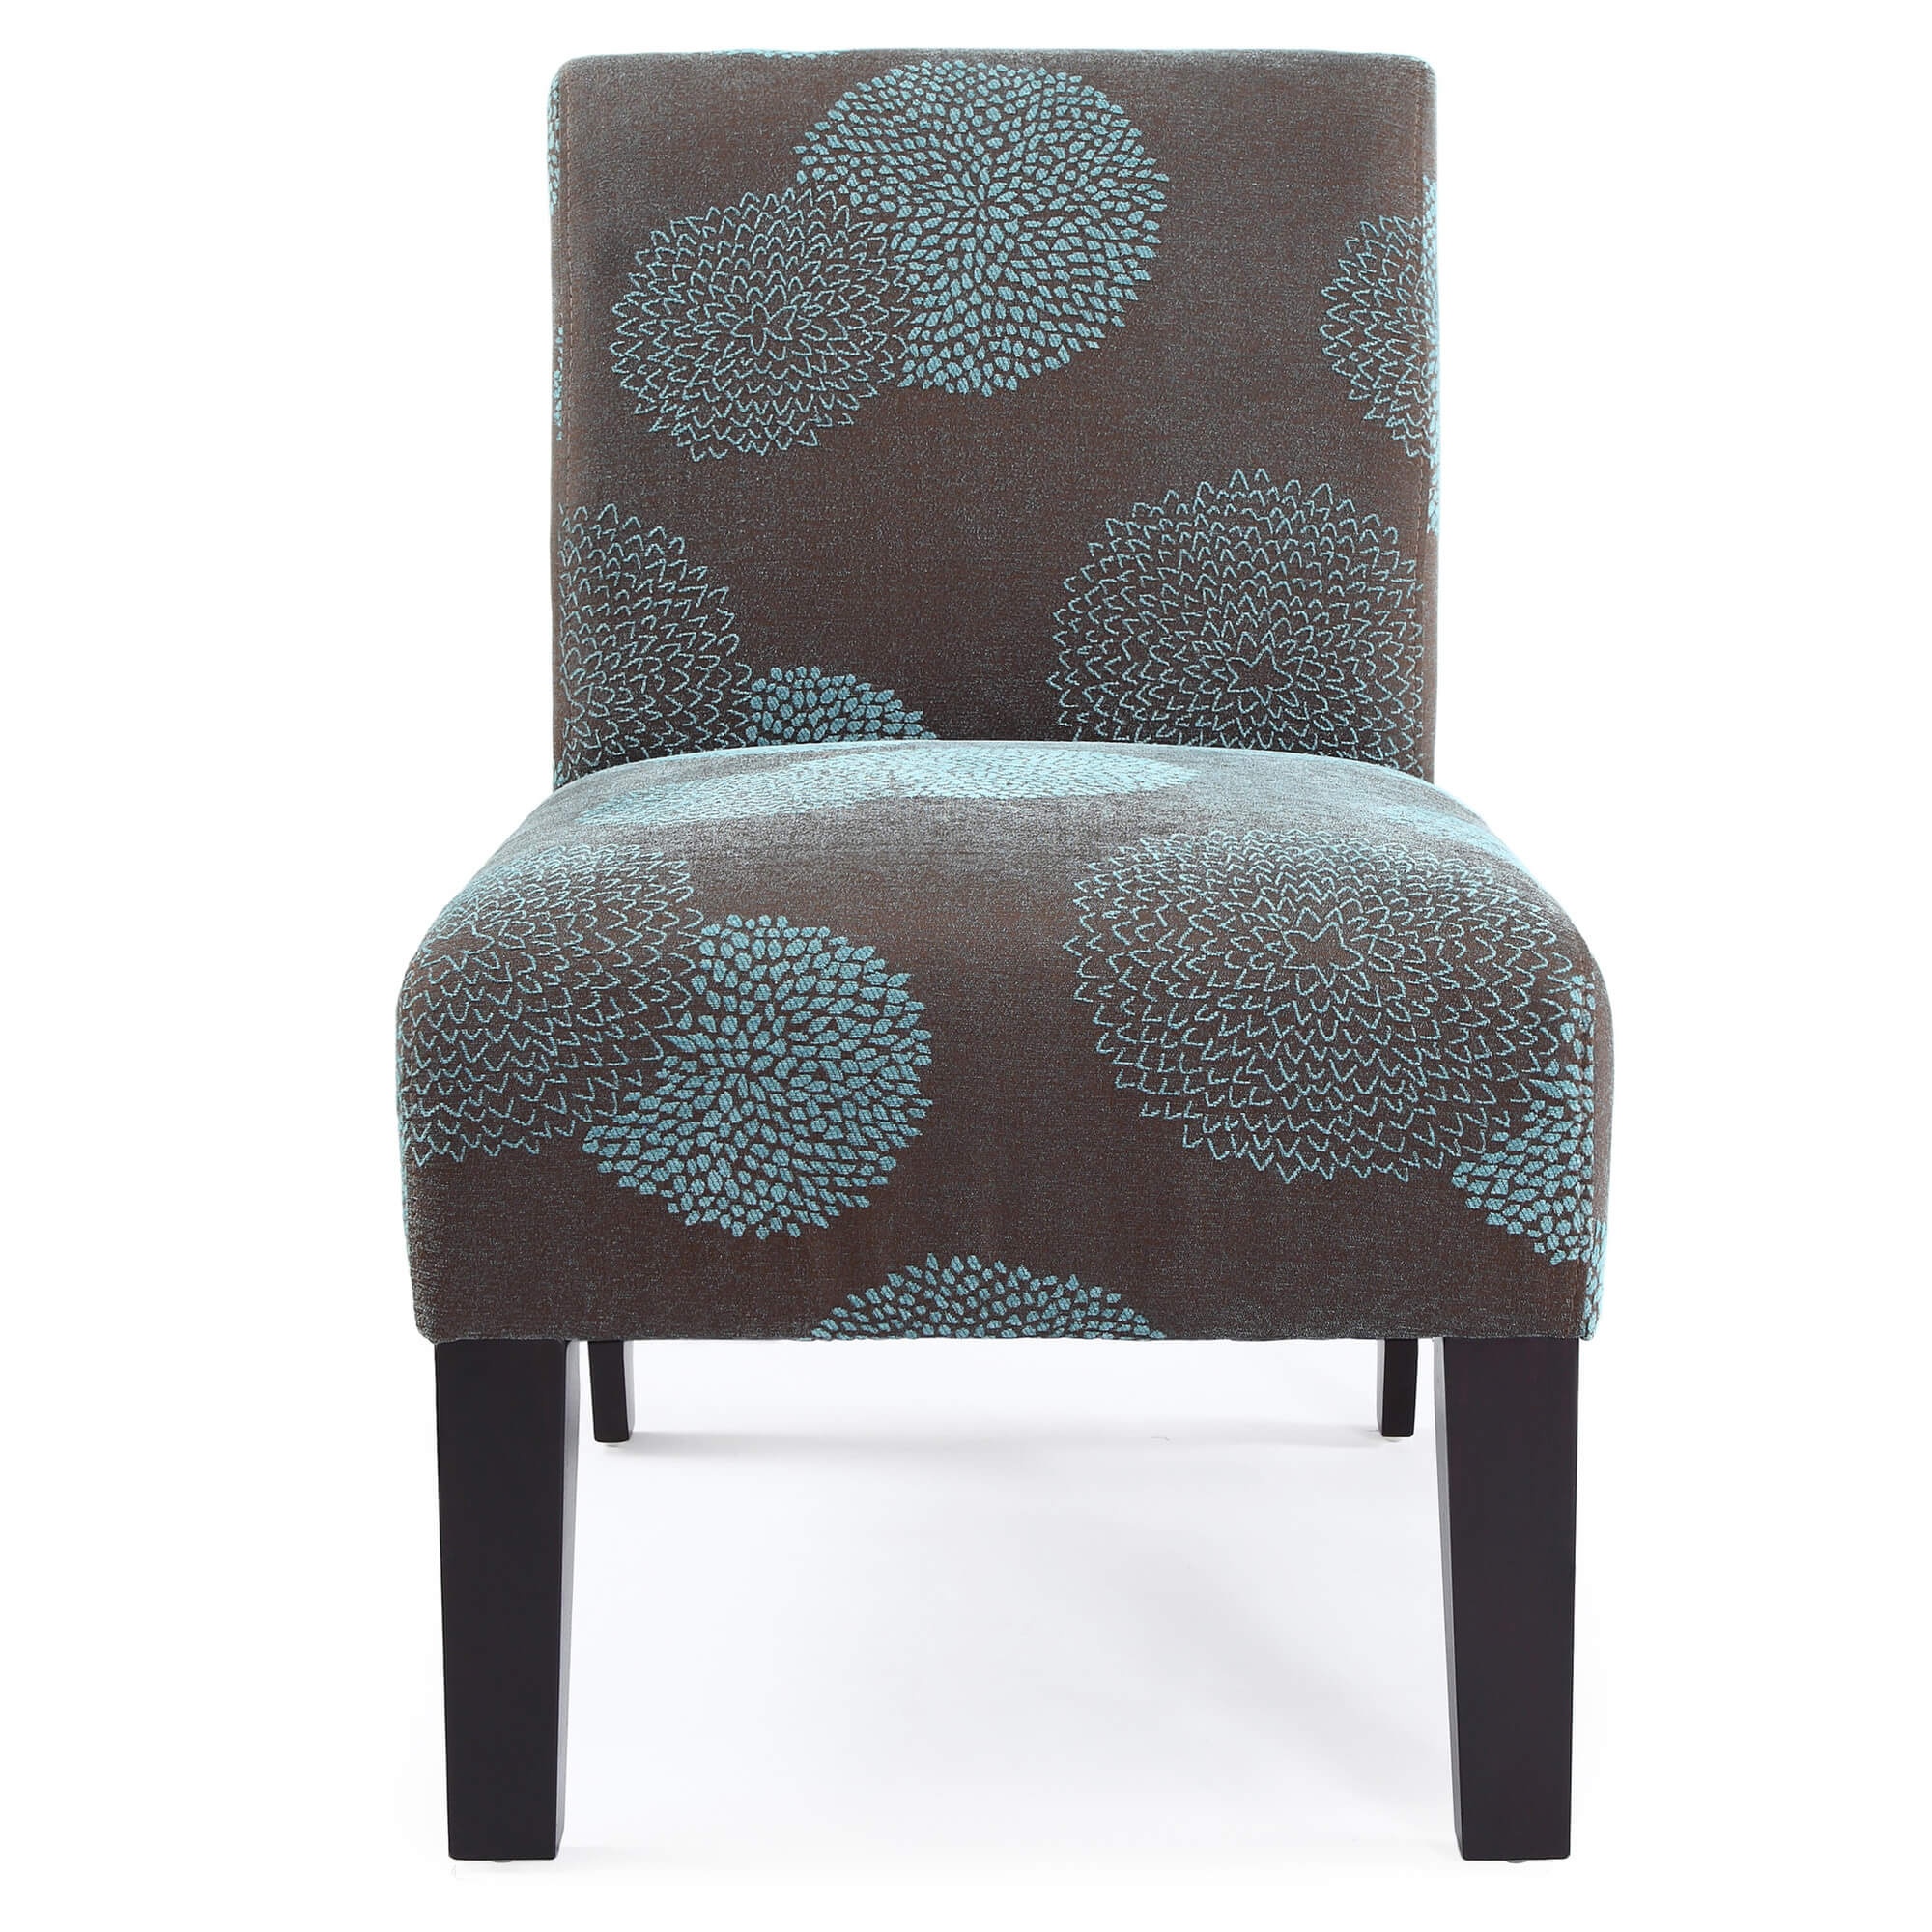 cheap accent chair italian dining chairs australia 10 attractive under 100 2019 this grey and blue would fit nicely in a room with some